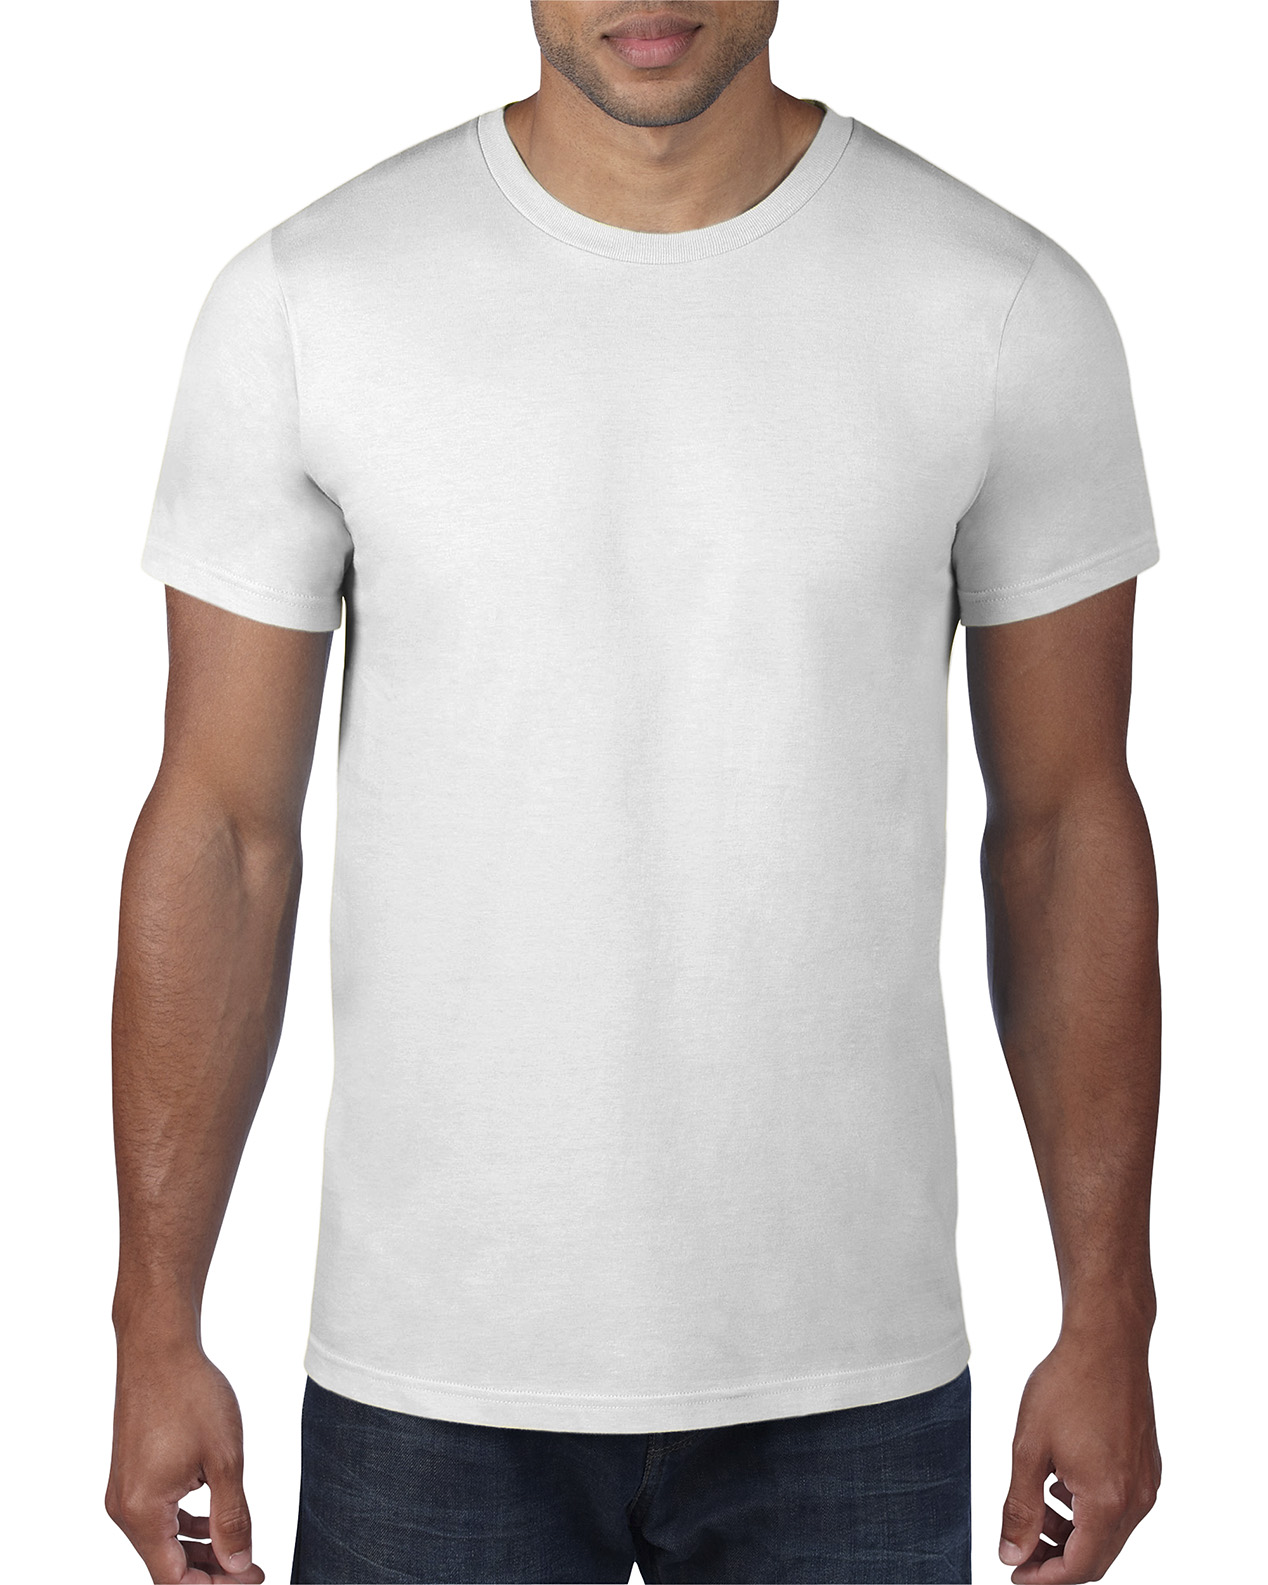 Anvil 980 Cotton Tee 150gsm - White